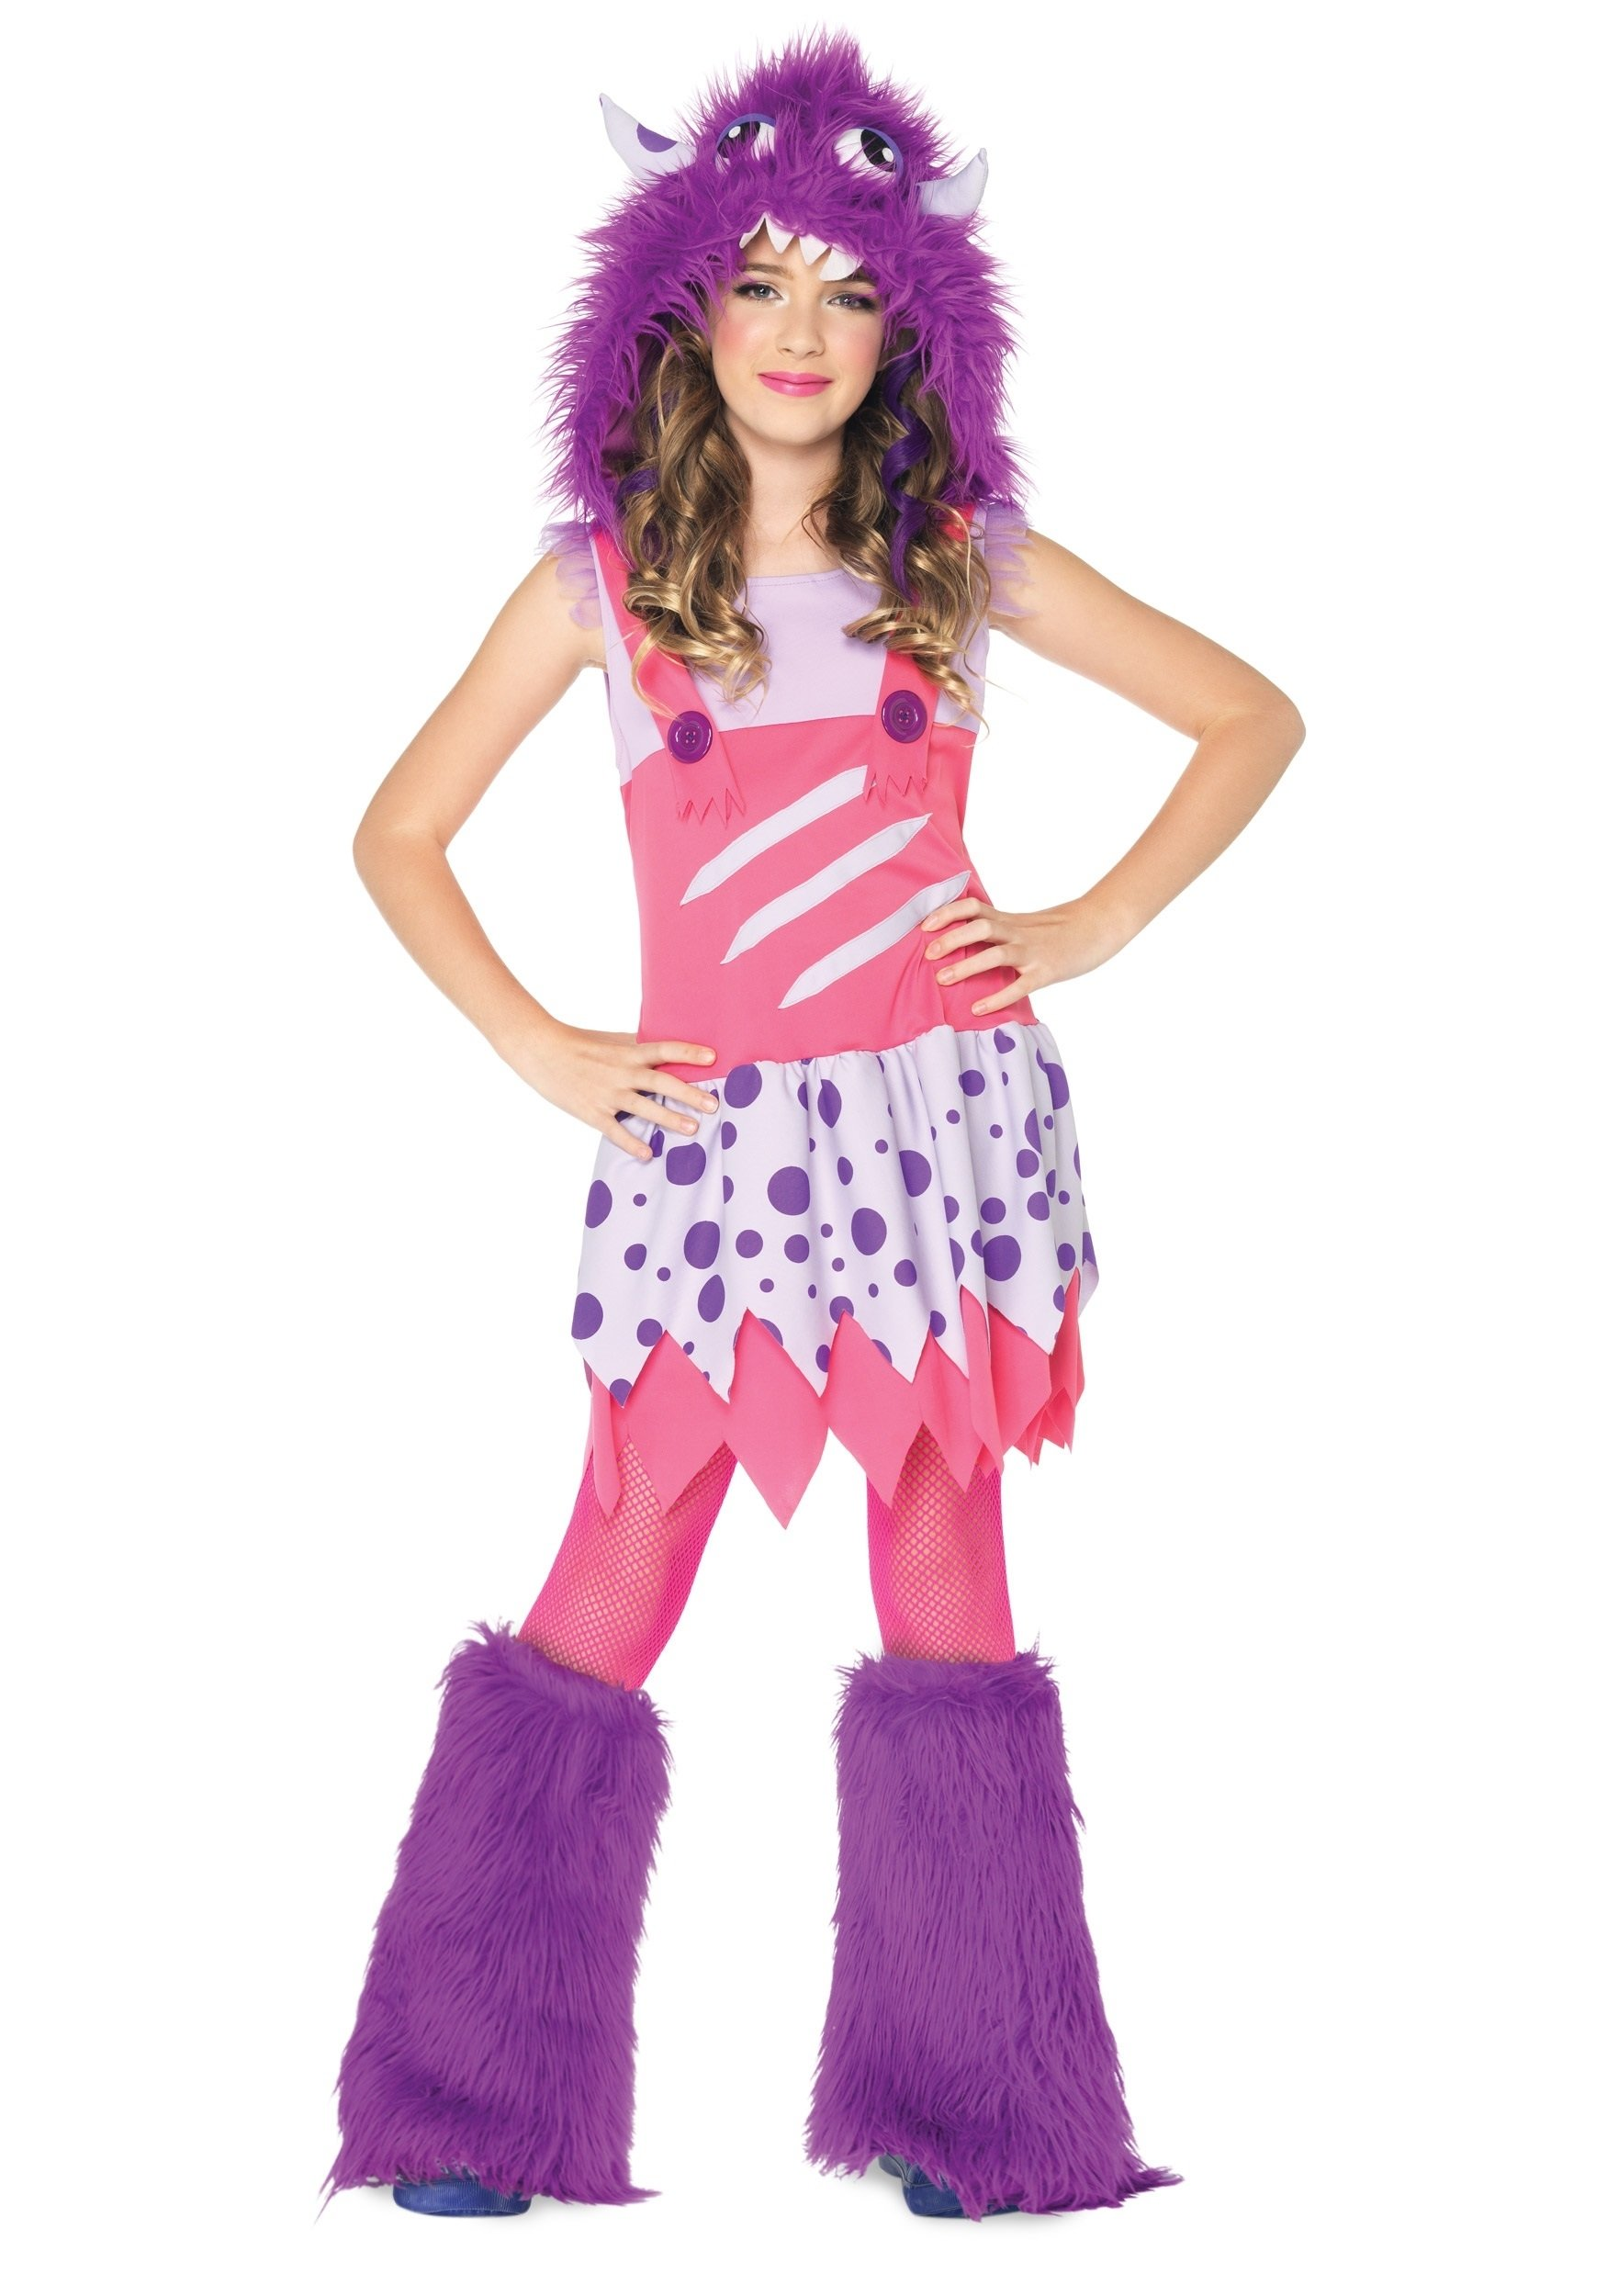 10 lovable cute teenage girl halloween costume ideas girls furball monster costume halloween costume ideas 2016